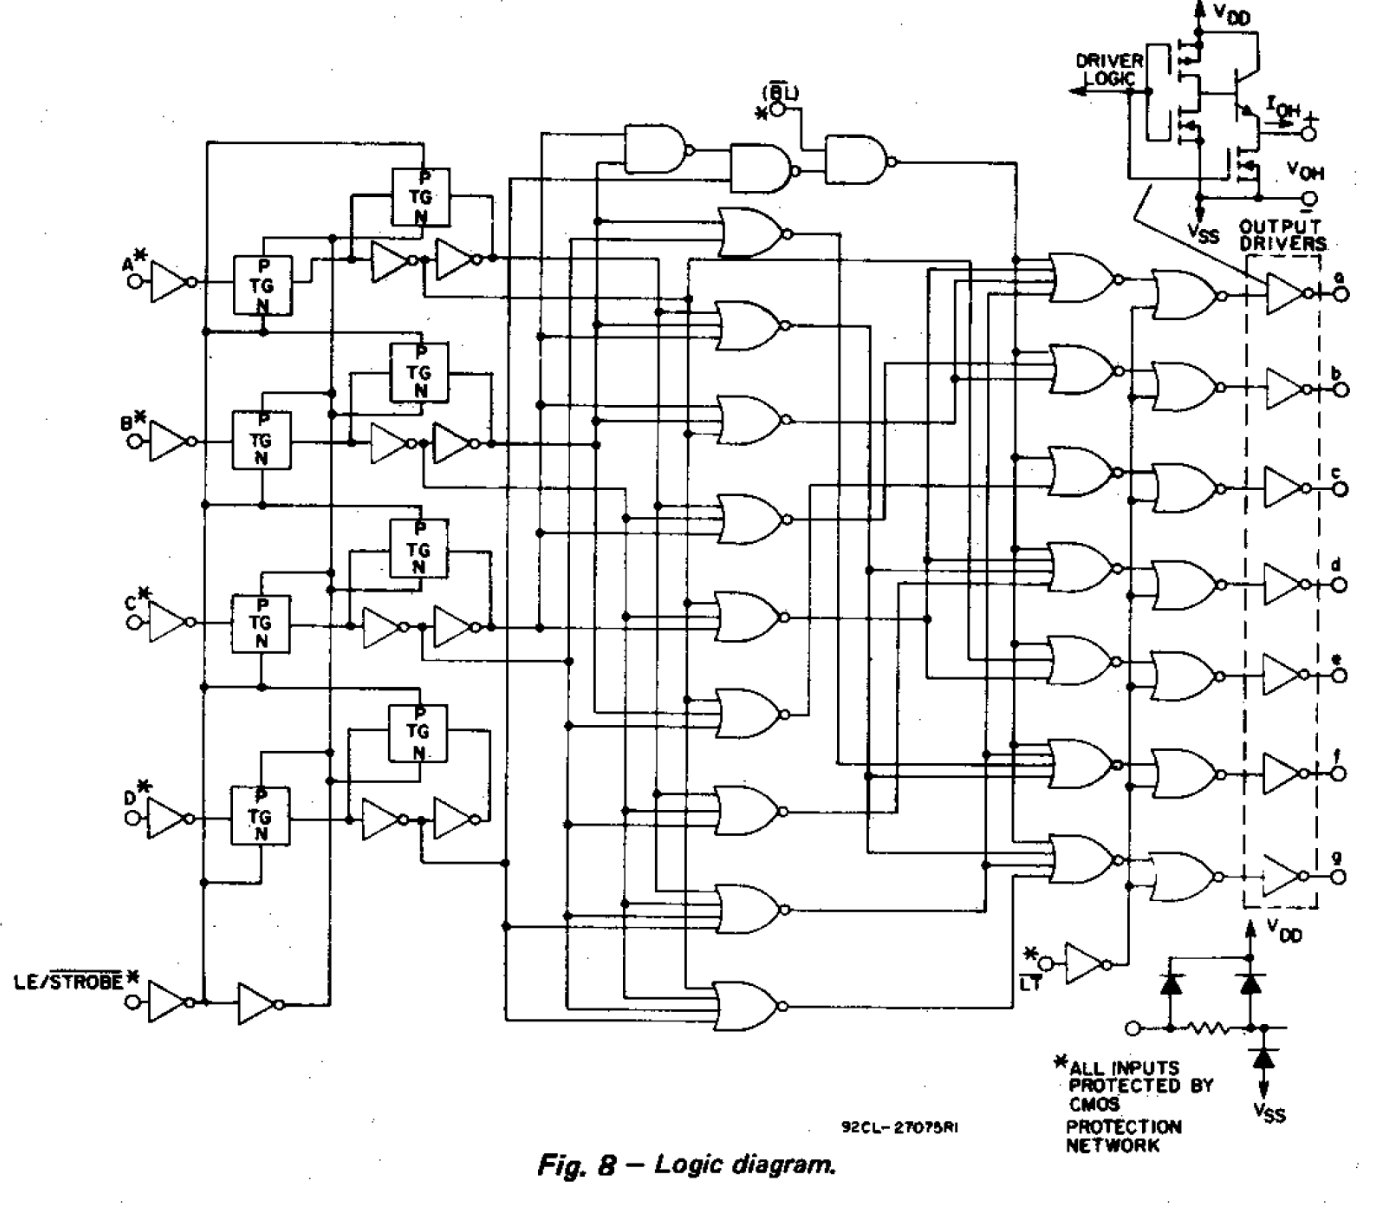 Circuit Diagram For 7 Segment Decoder Wiring Landor Logic Display Given The Following Schematic From Texas Instr Chegg Com